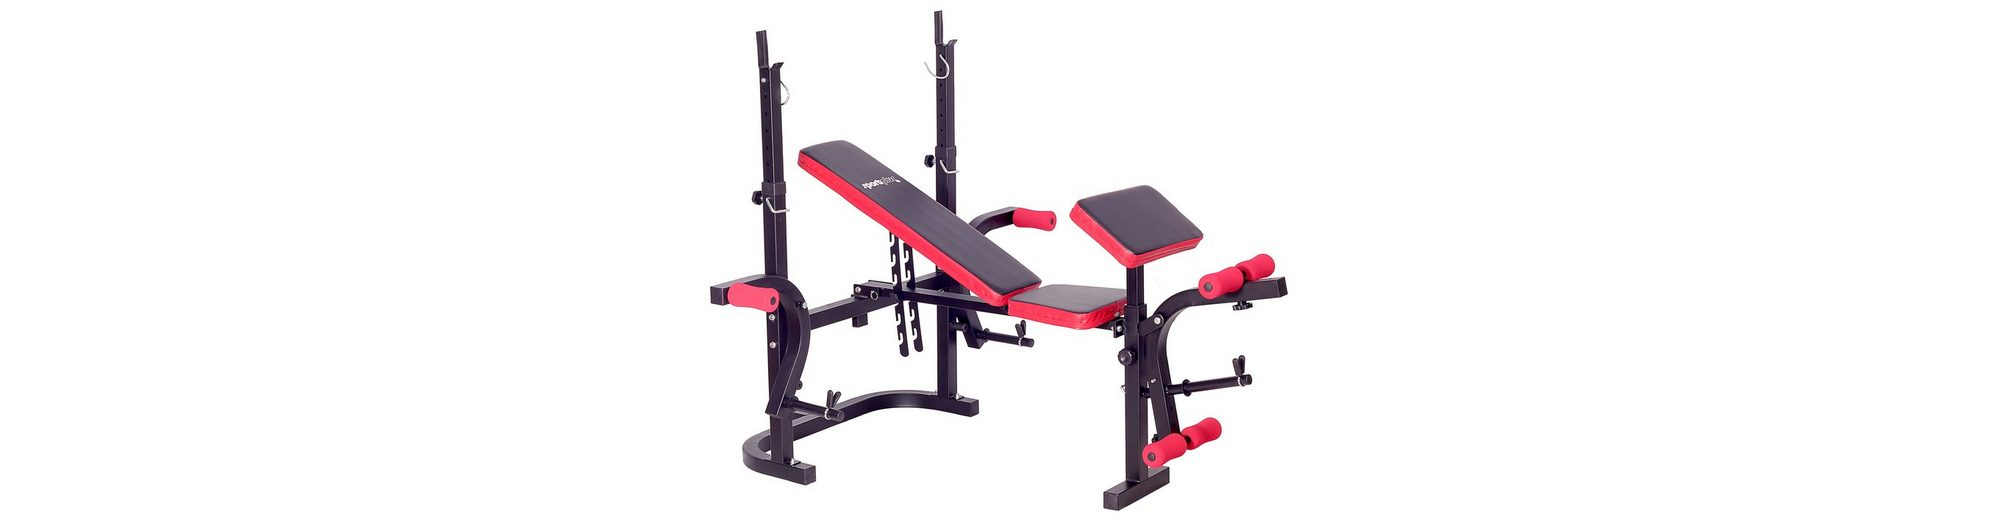 Hantelbank, »Weight Bench SP-WB-003-B«, Sportplus